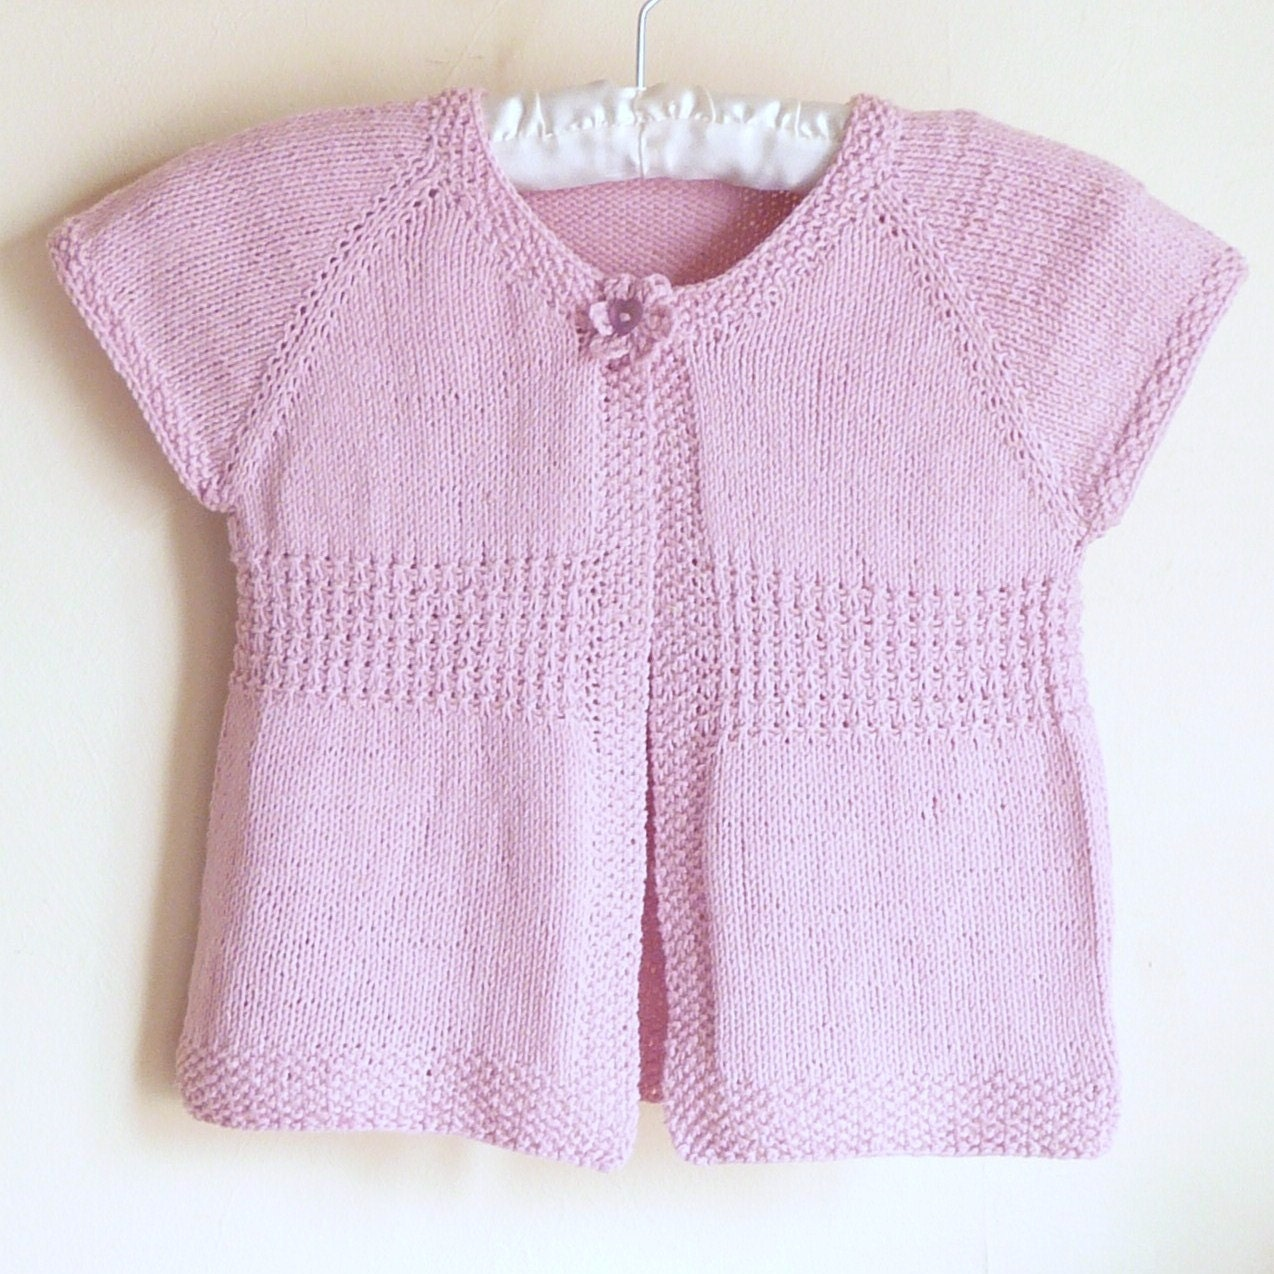 Knitting Sweater Design For Baby Girl : Knitting PATTERN Seamless Top Down Baby Girl CARDIGAN by ...